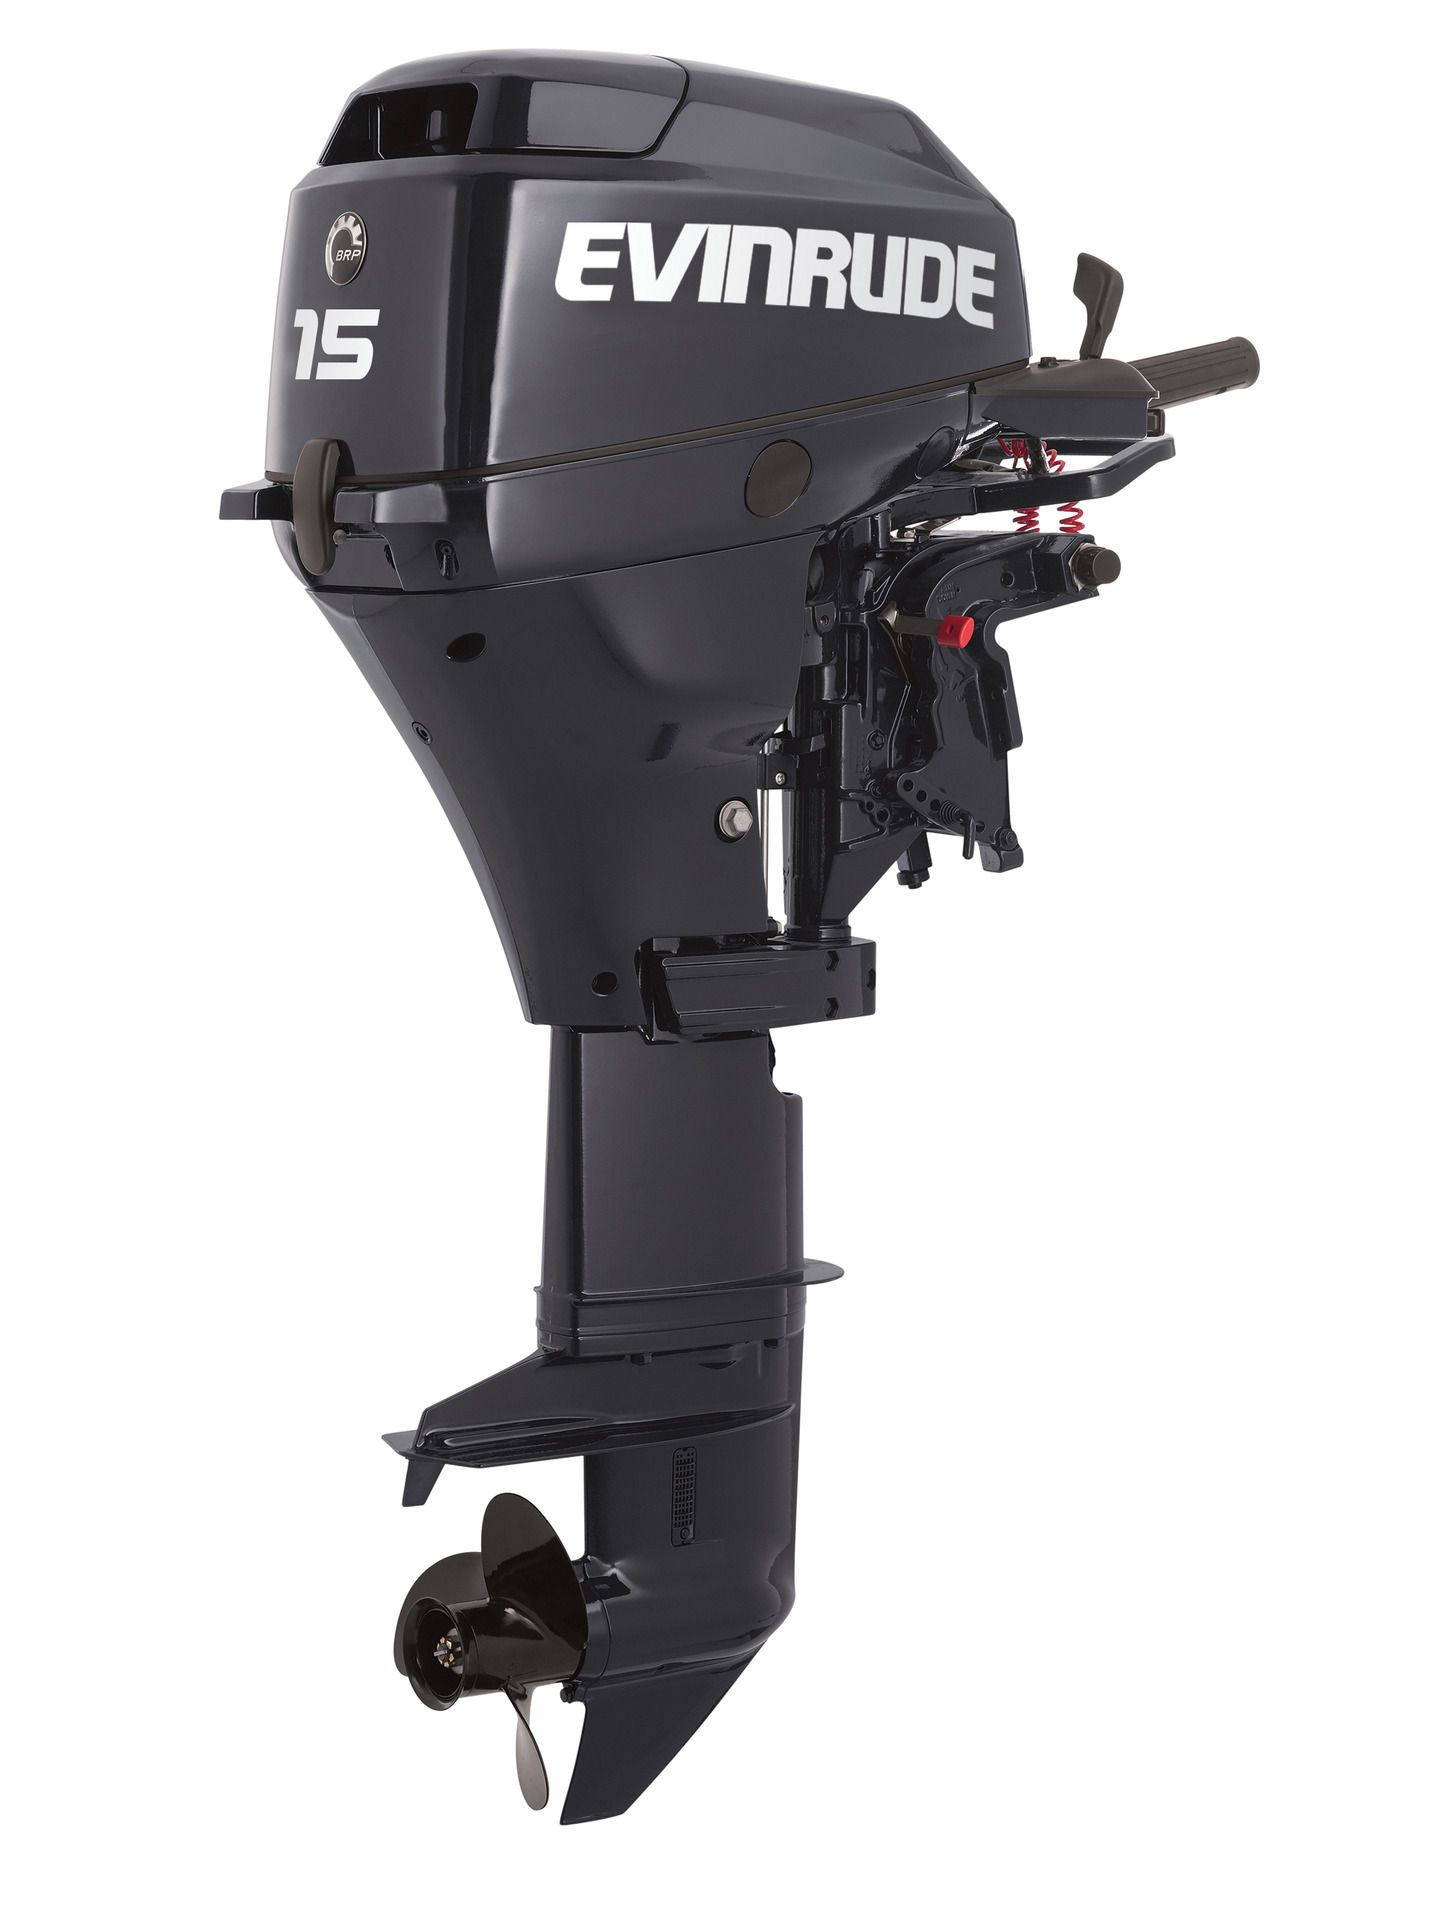 Evinrude 15 Hp Outboard Motor Parts King size